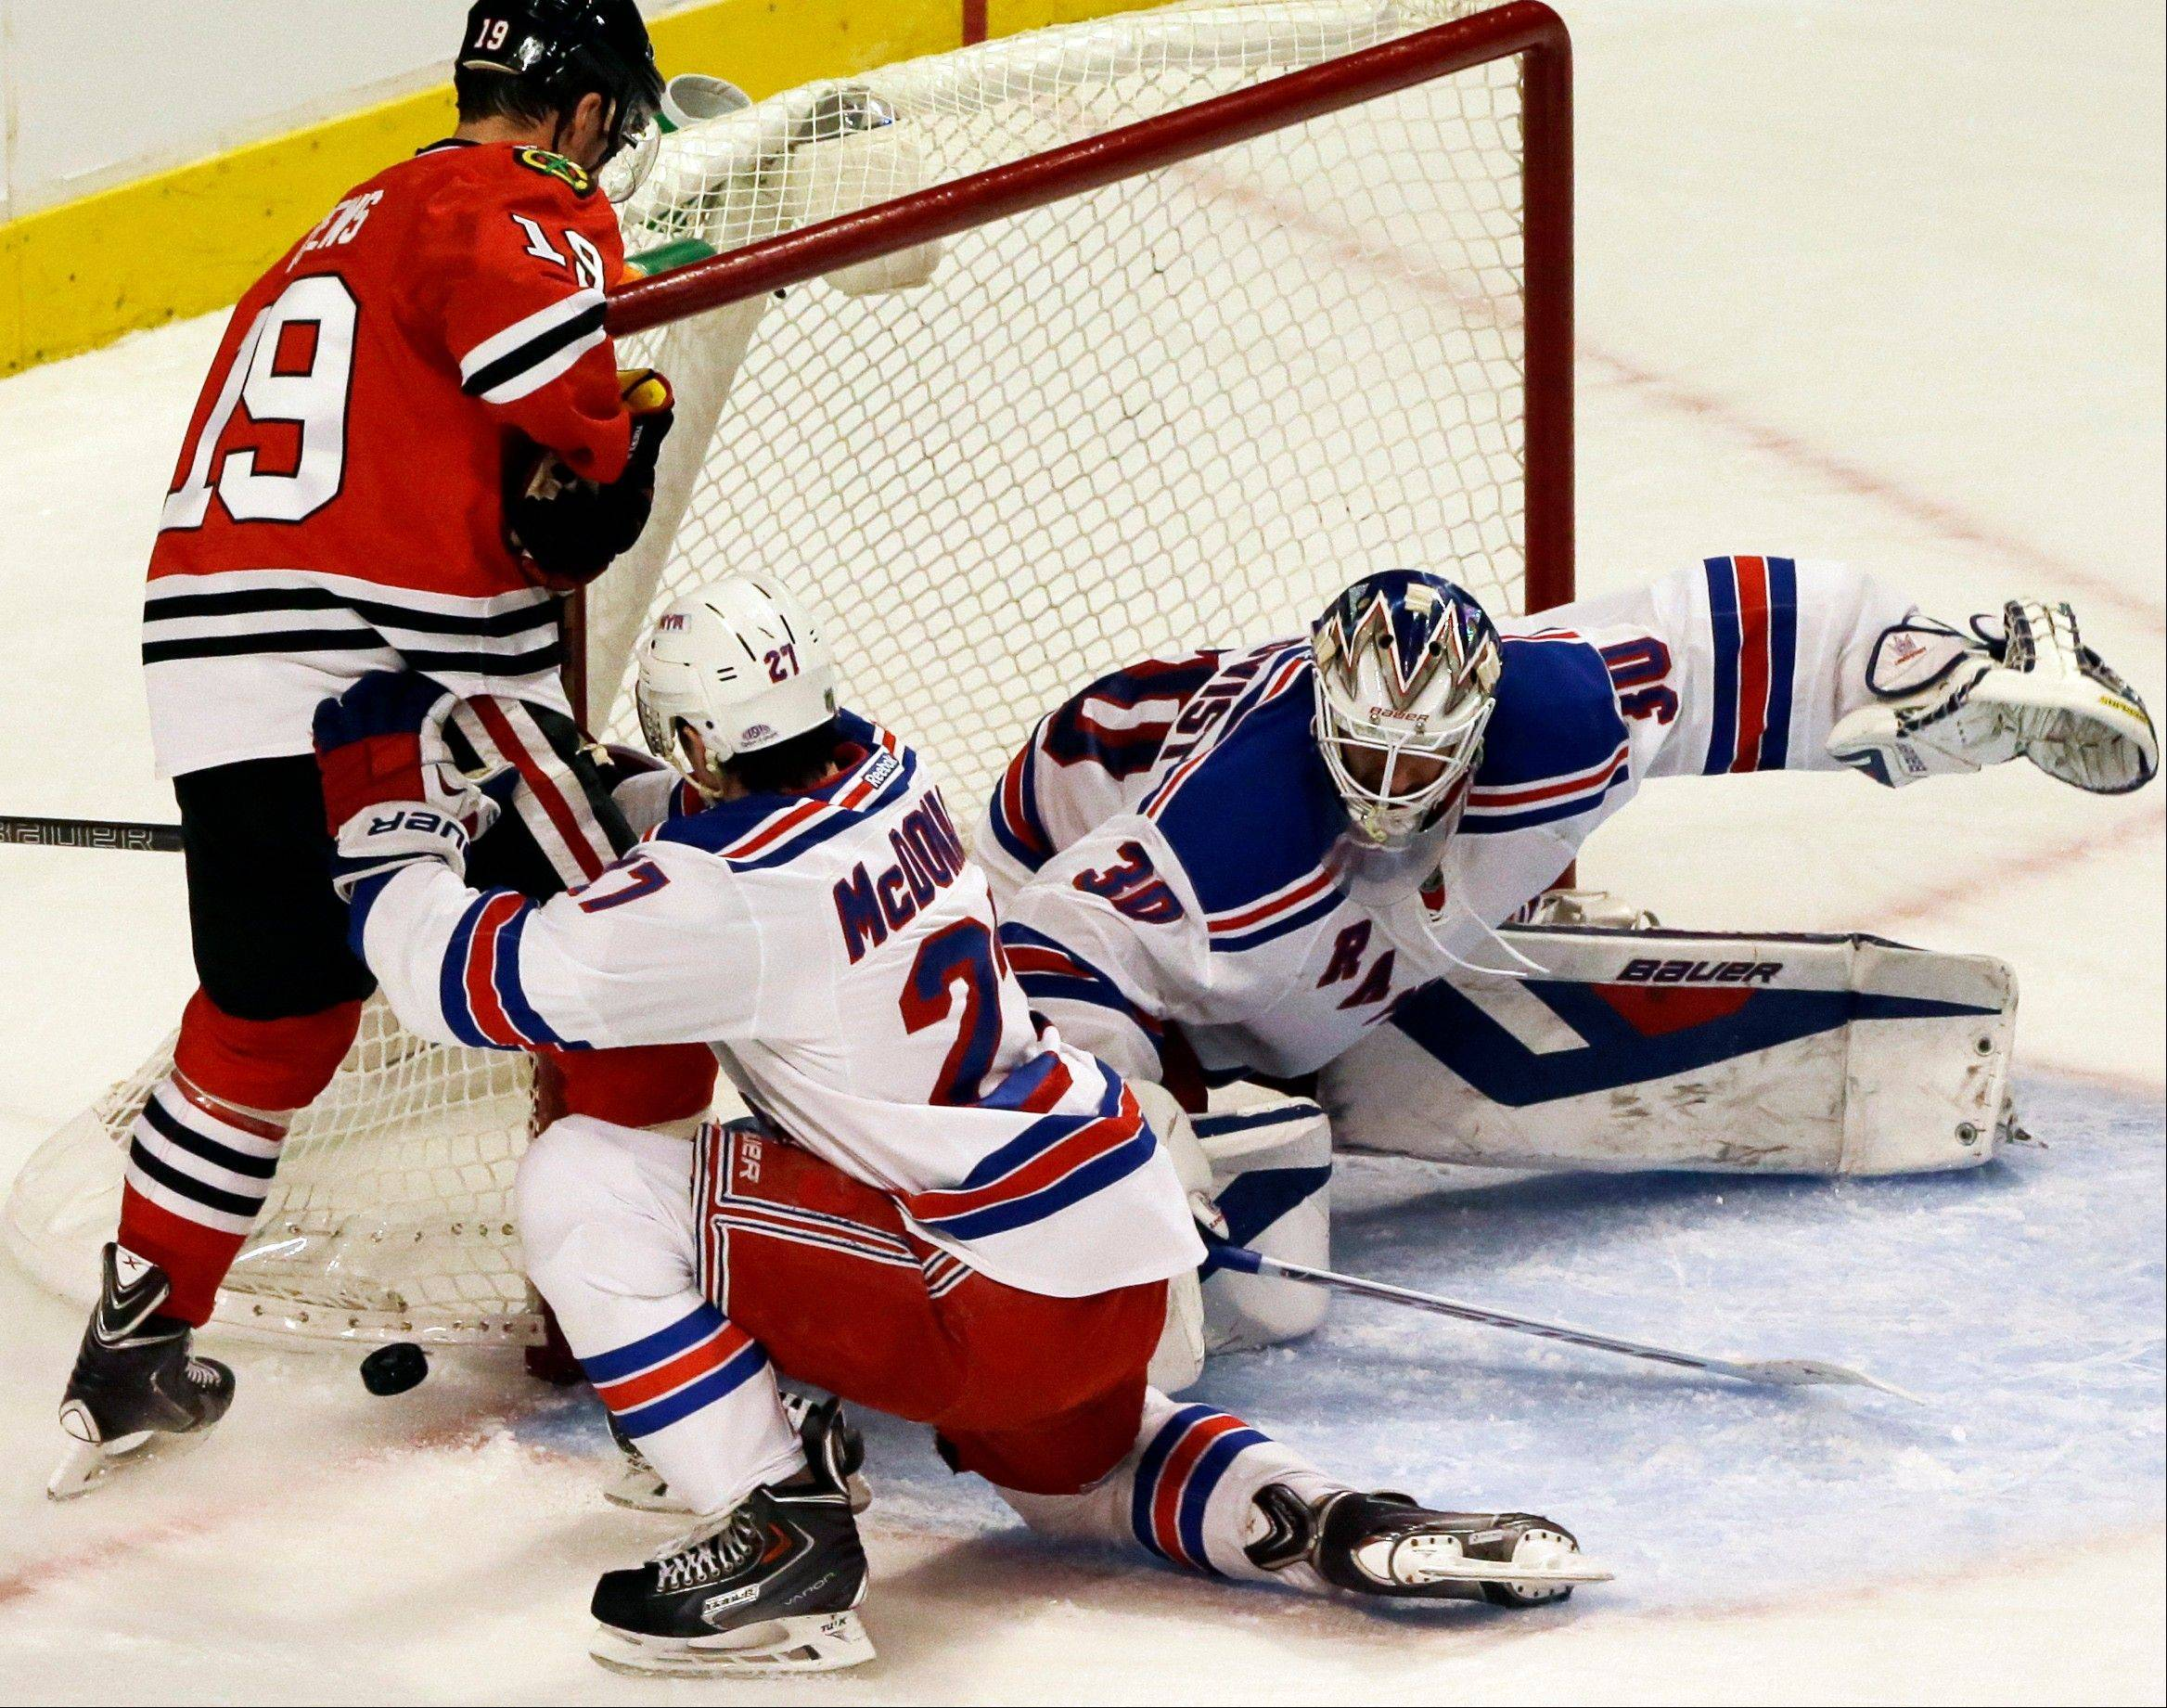 Rangers goalie Henrik Lundqvist blocks a shot by the Blackhawks' Jonathan Toews as New York's Ryan McDonagh helps his goalie.